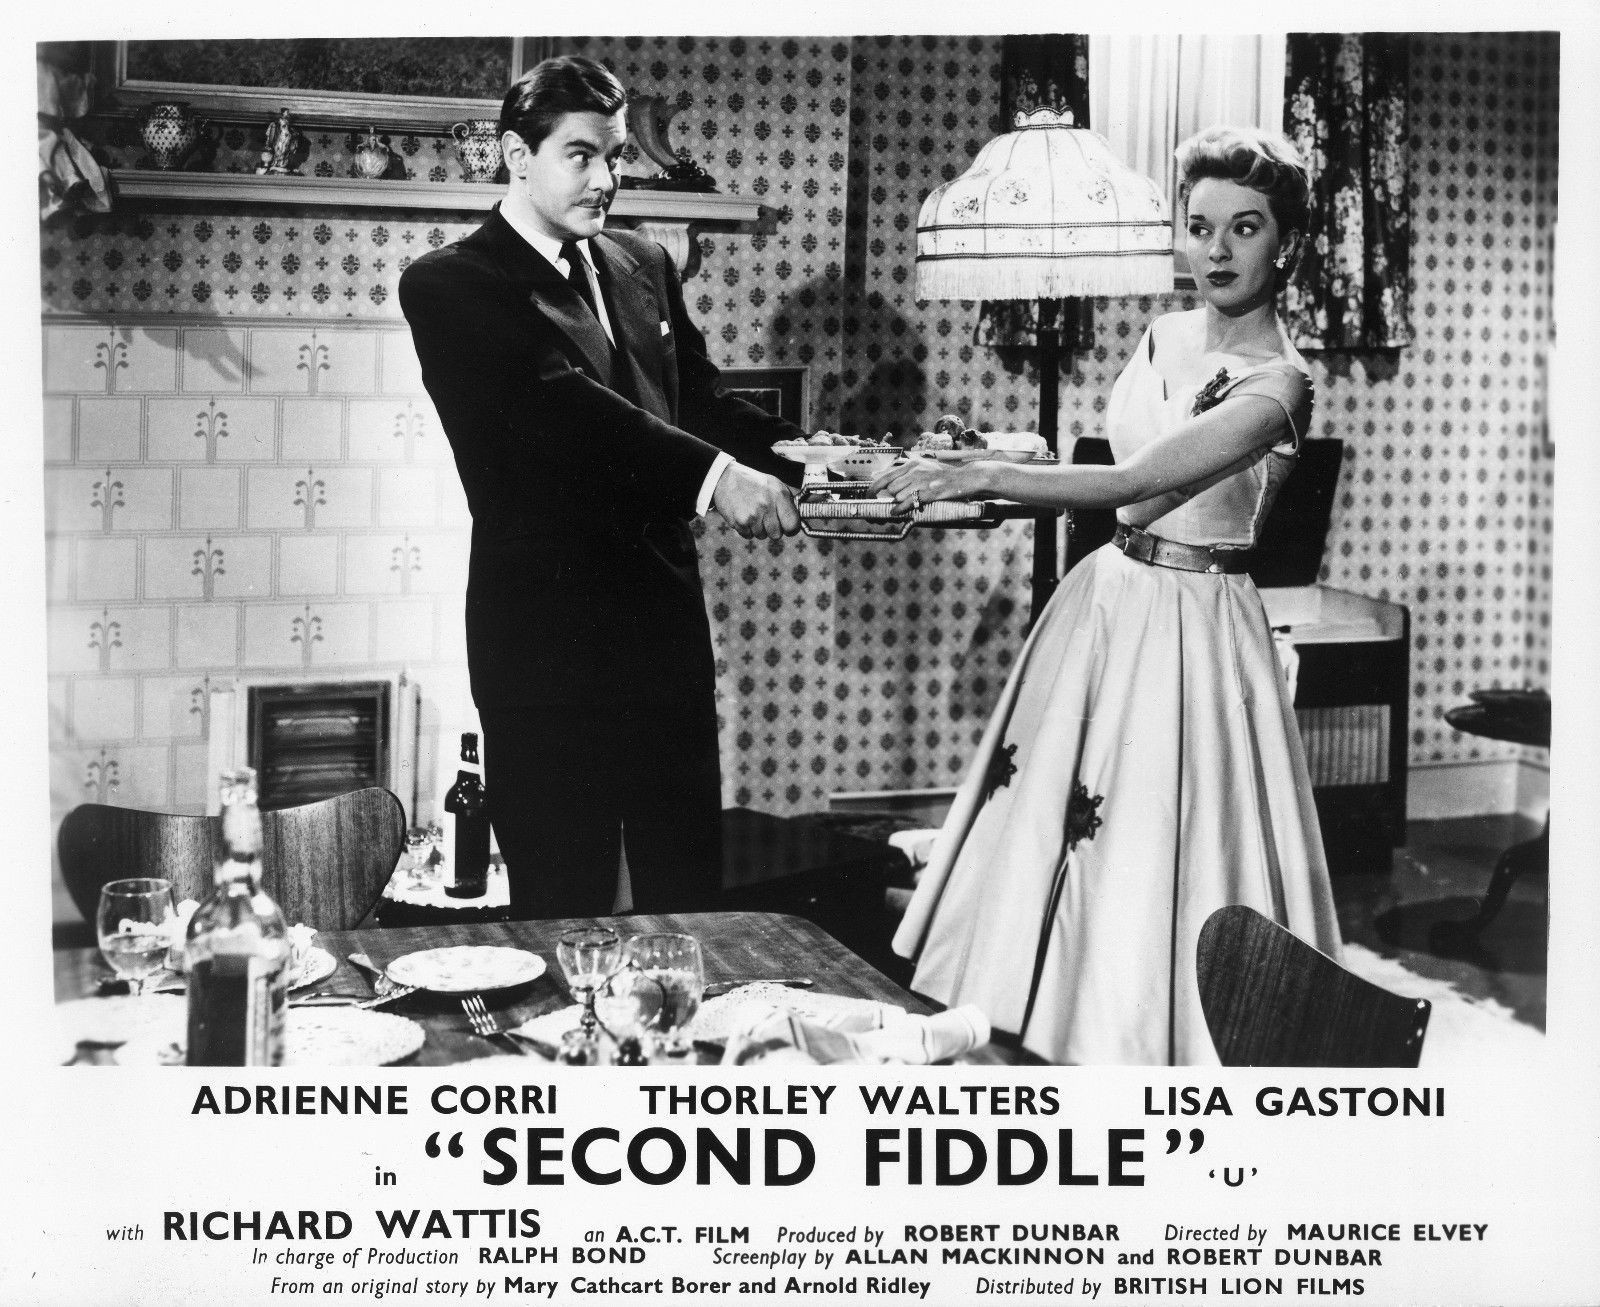 Thorley Walters and Lisa Gastoni in Second Fiddle (1957)